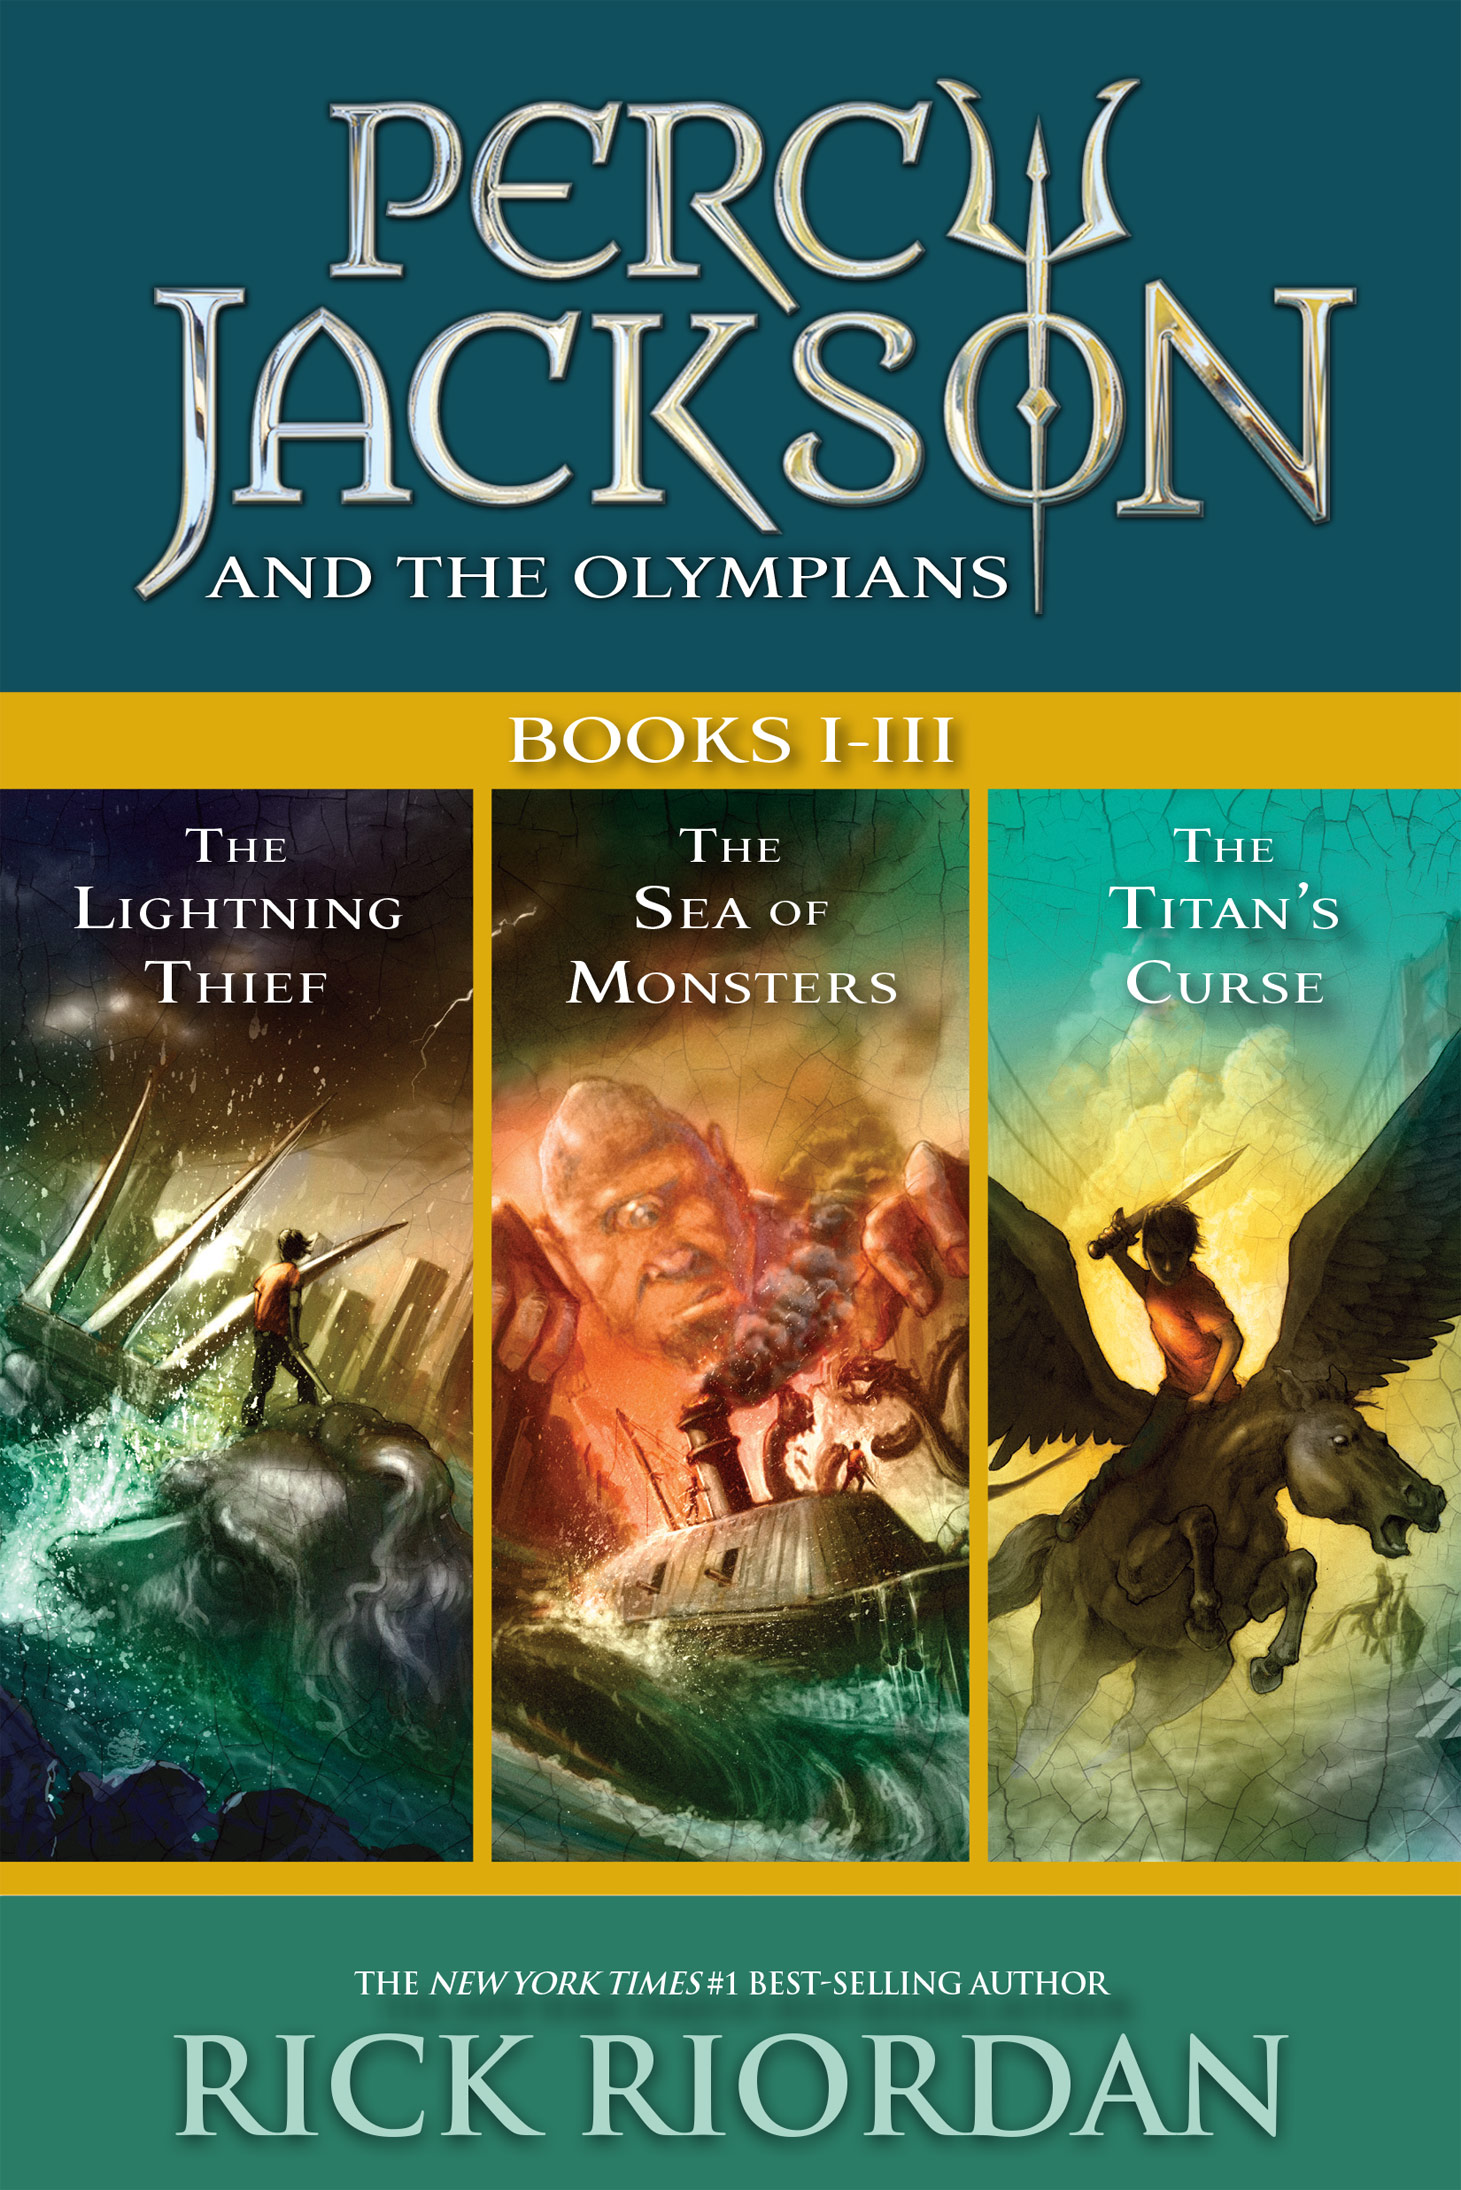 Cover Image of Percy Jackson and the Olympians: Books I-III